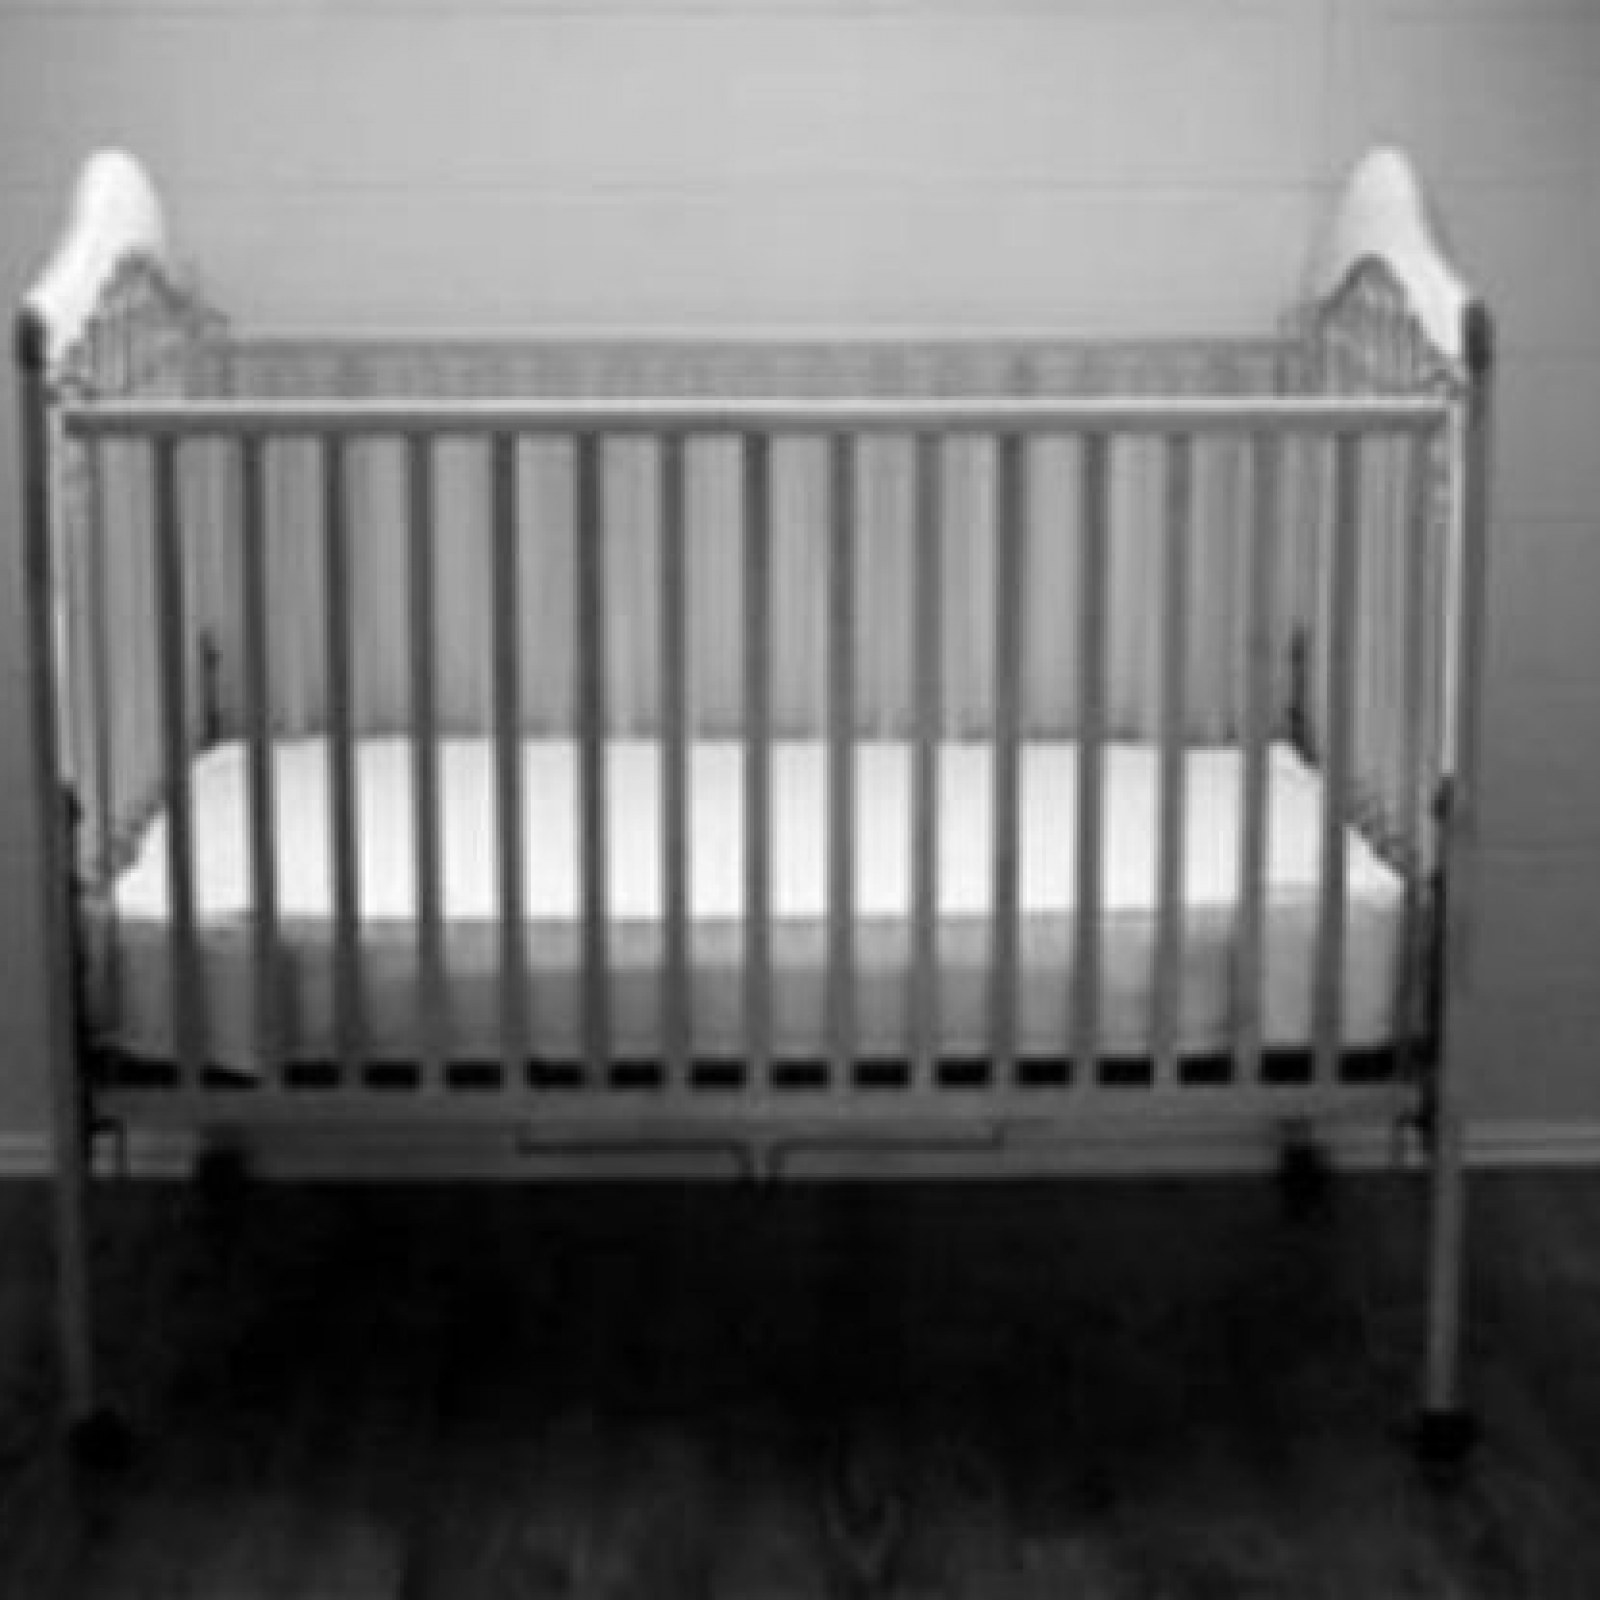 Baby Monitor Hacked: Child Threatened With Kidnapping, Other Lewd